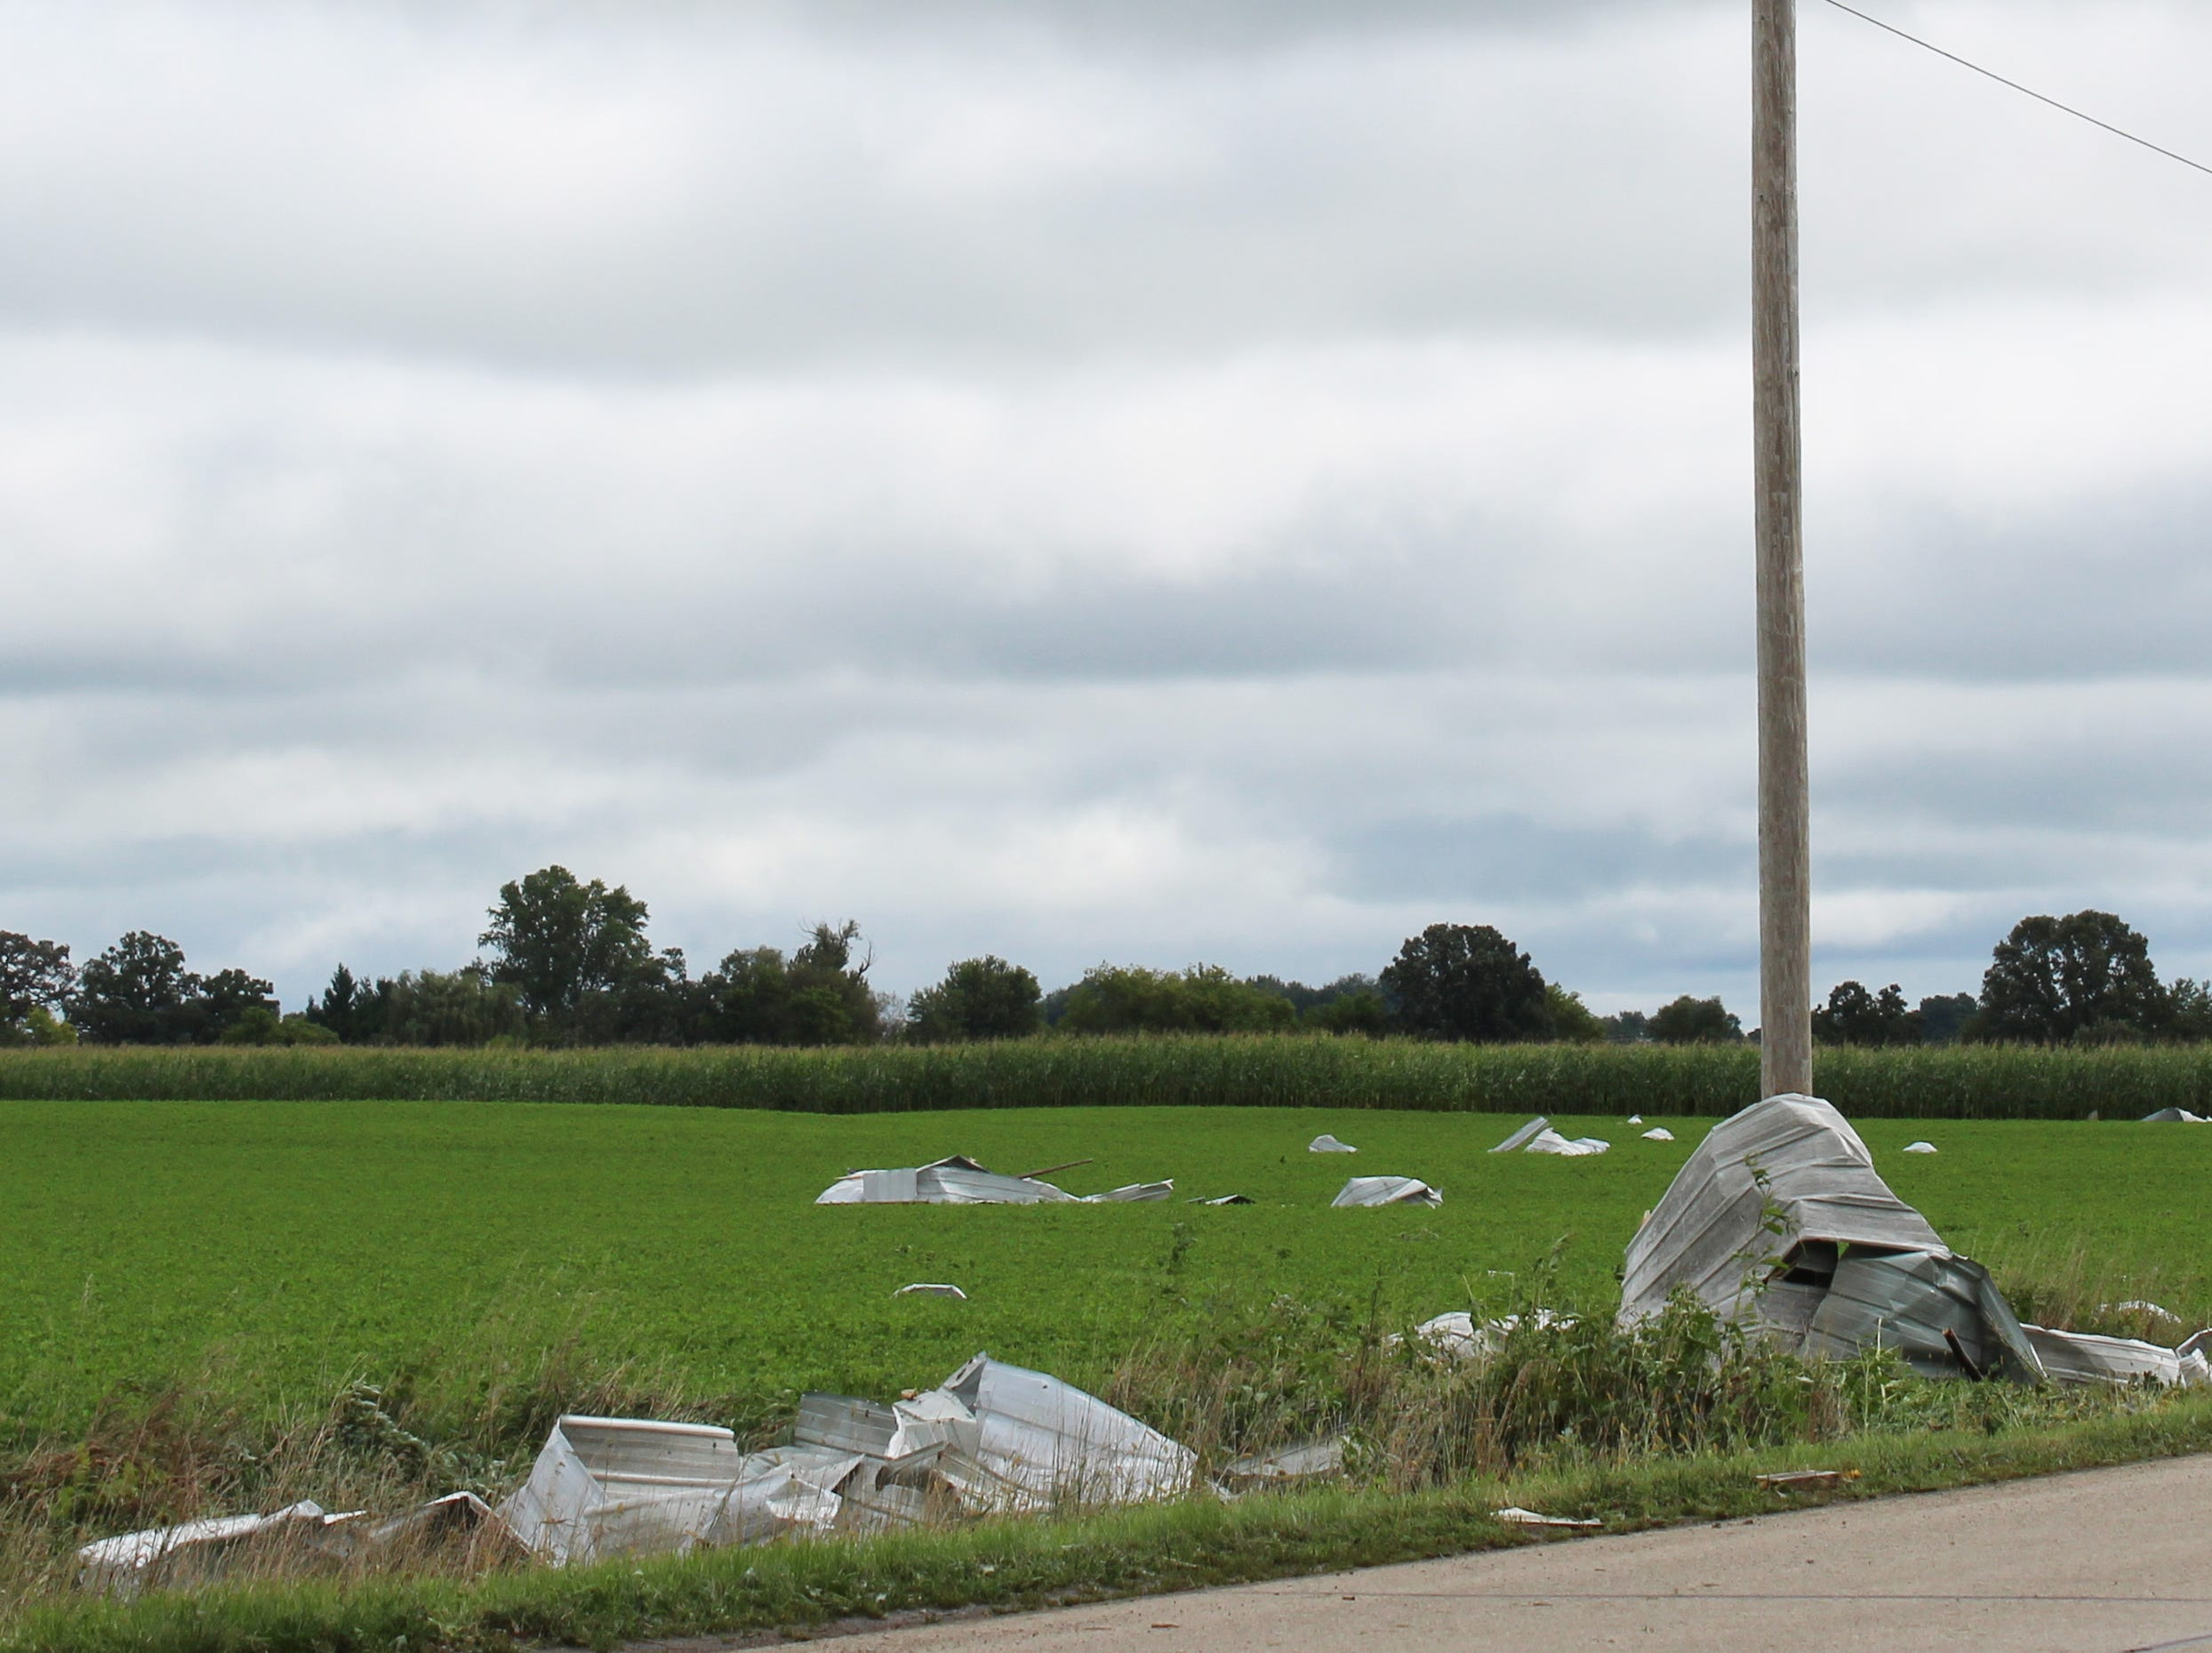 Sheet metal is seen scattered in a nearby farm field. Volunteers will later walk the fields to search for metal that may ruin equipment or injure cows.